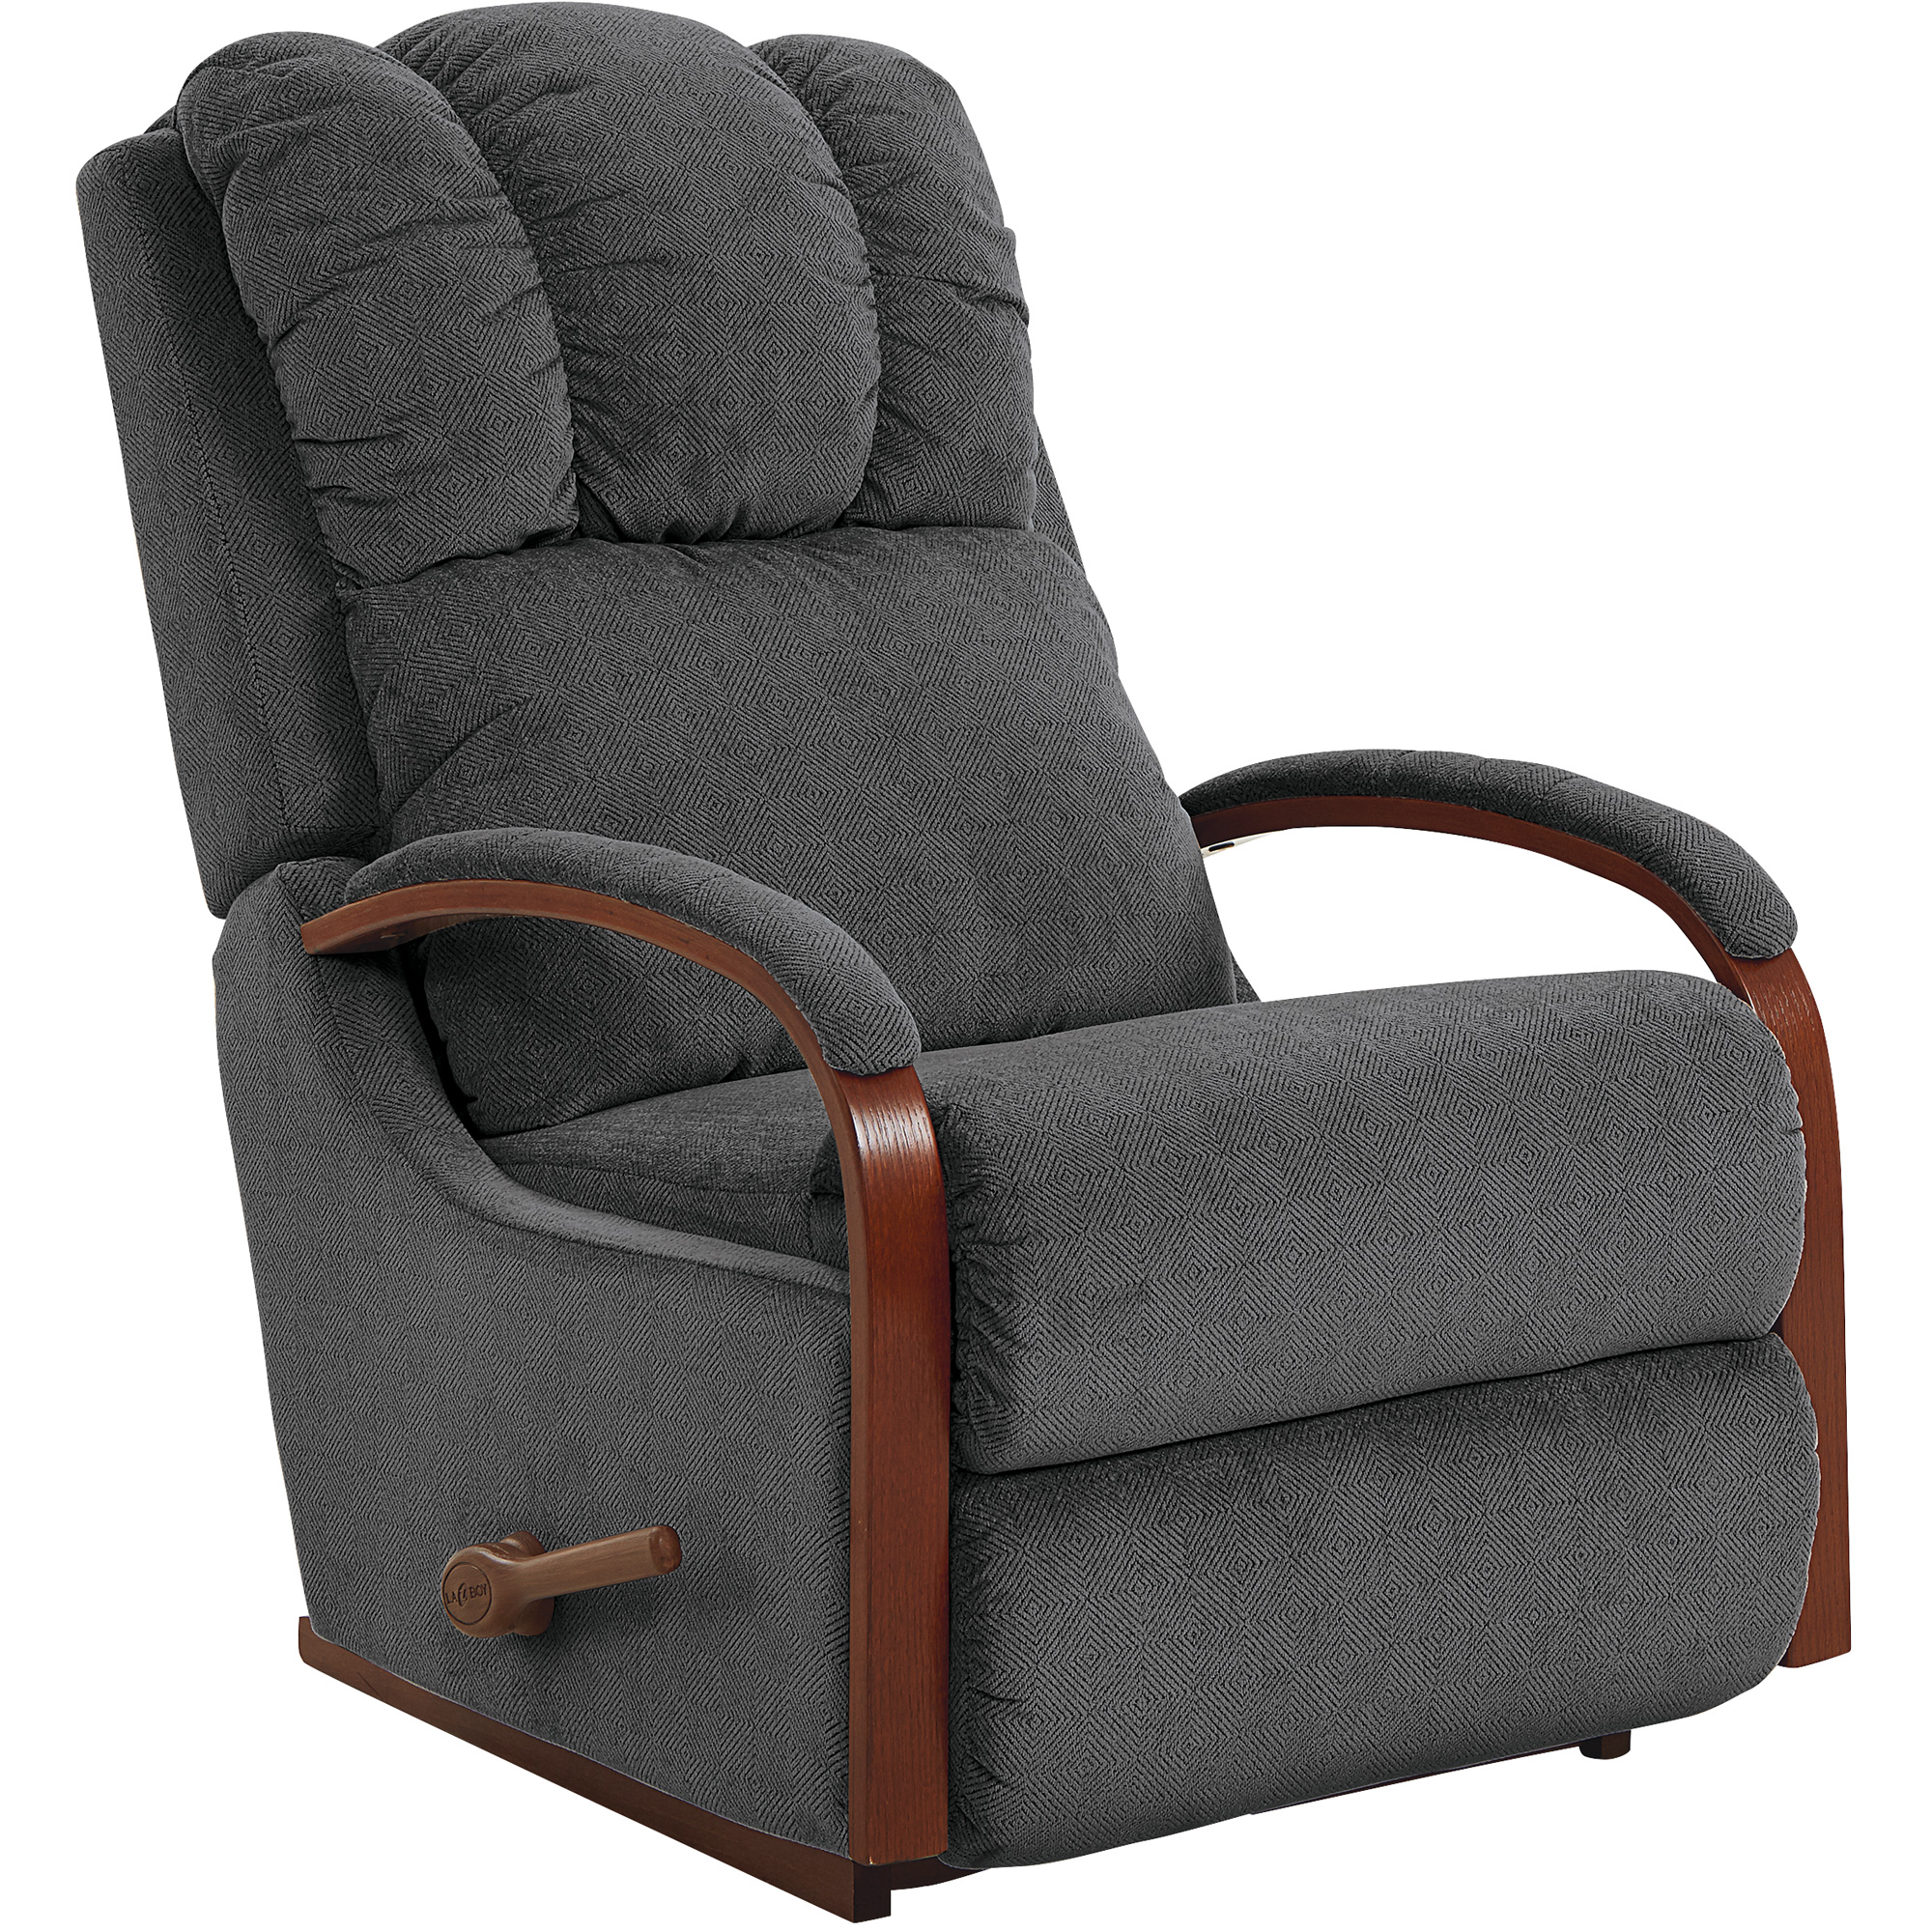 La-Z-Boy | Harbor Town Midnight Rocker Recliner Chair